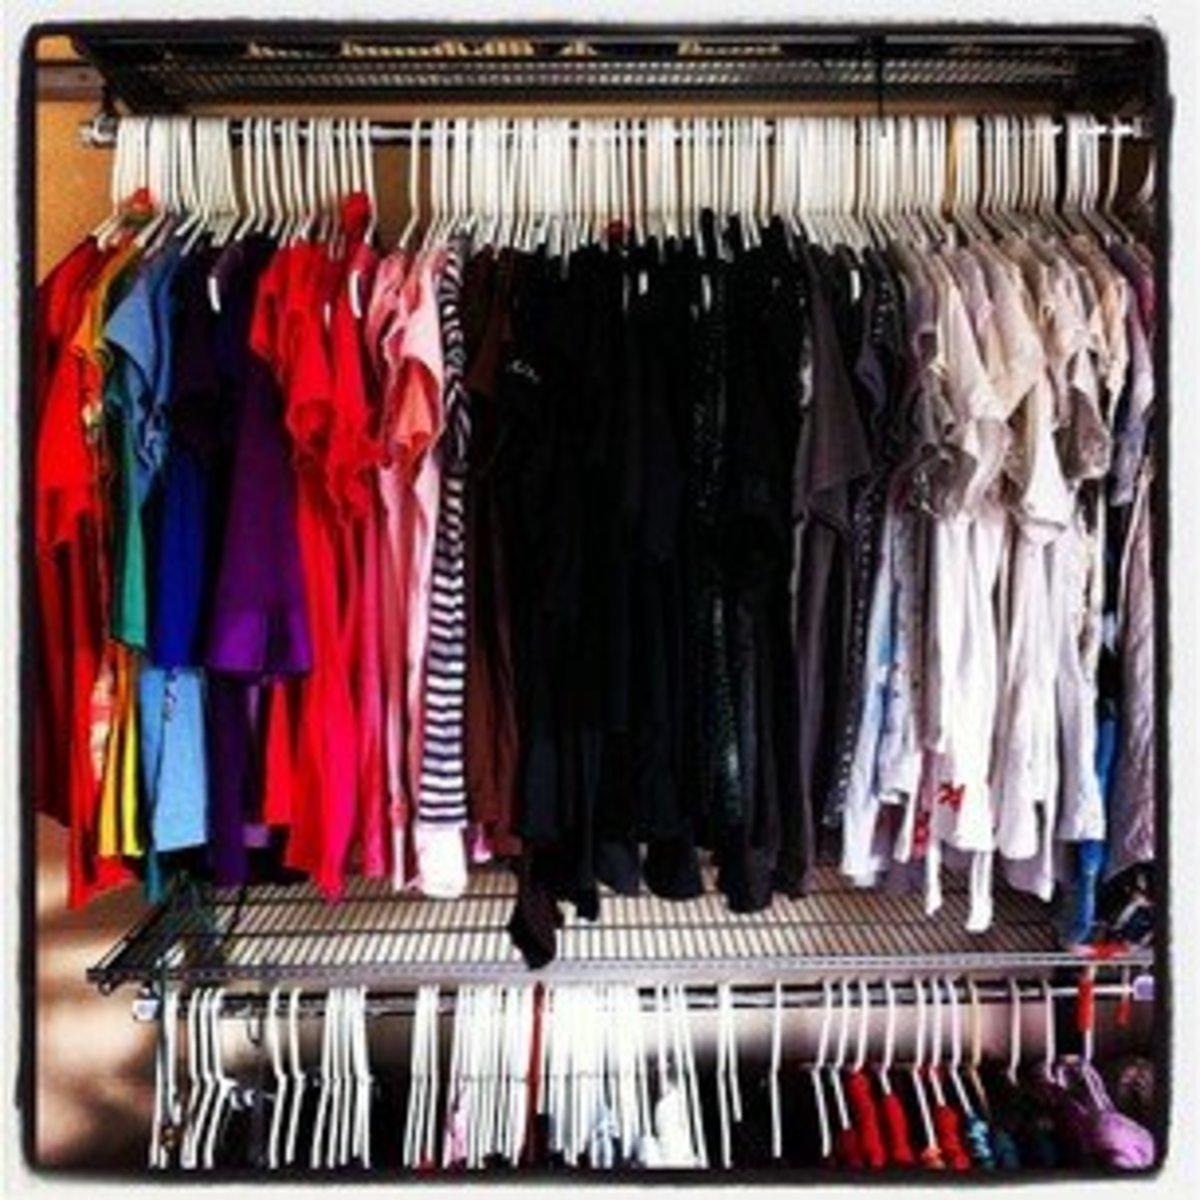 how-to-organize-your-closet-by-type-and-color-step-by-step-instructions